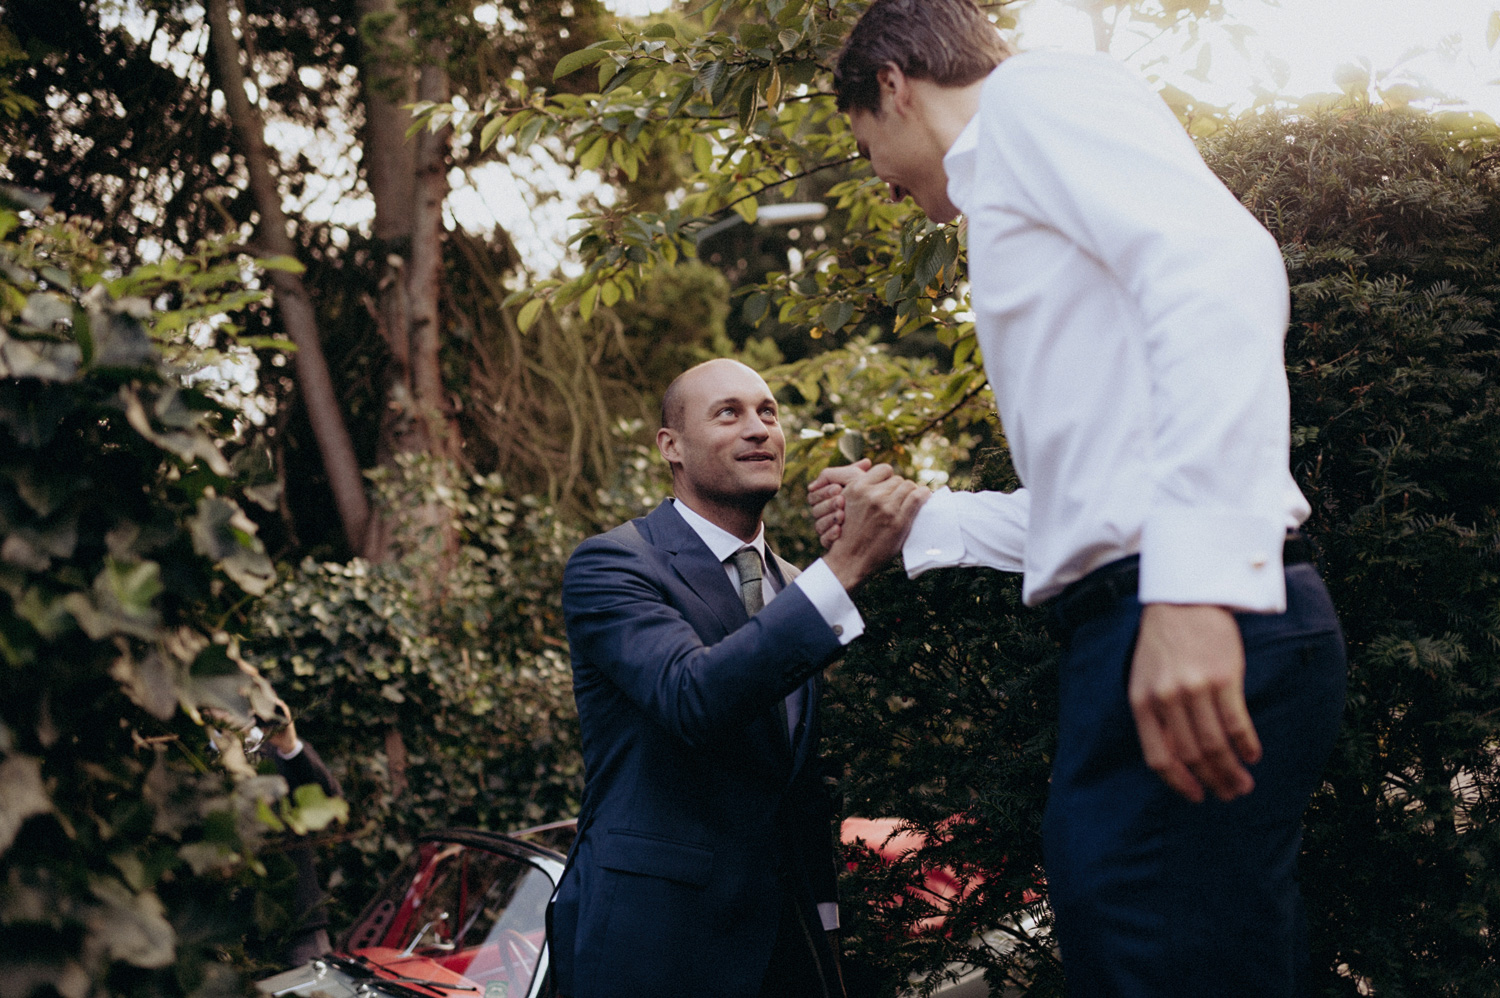 Groom shaking hands with friend in the woods